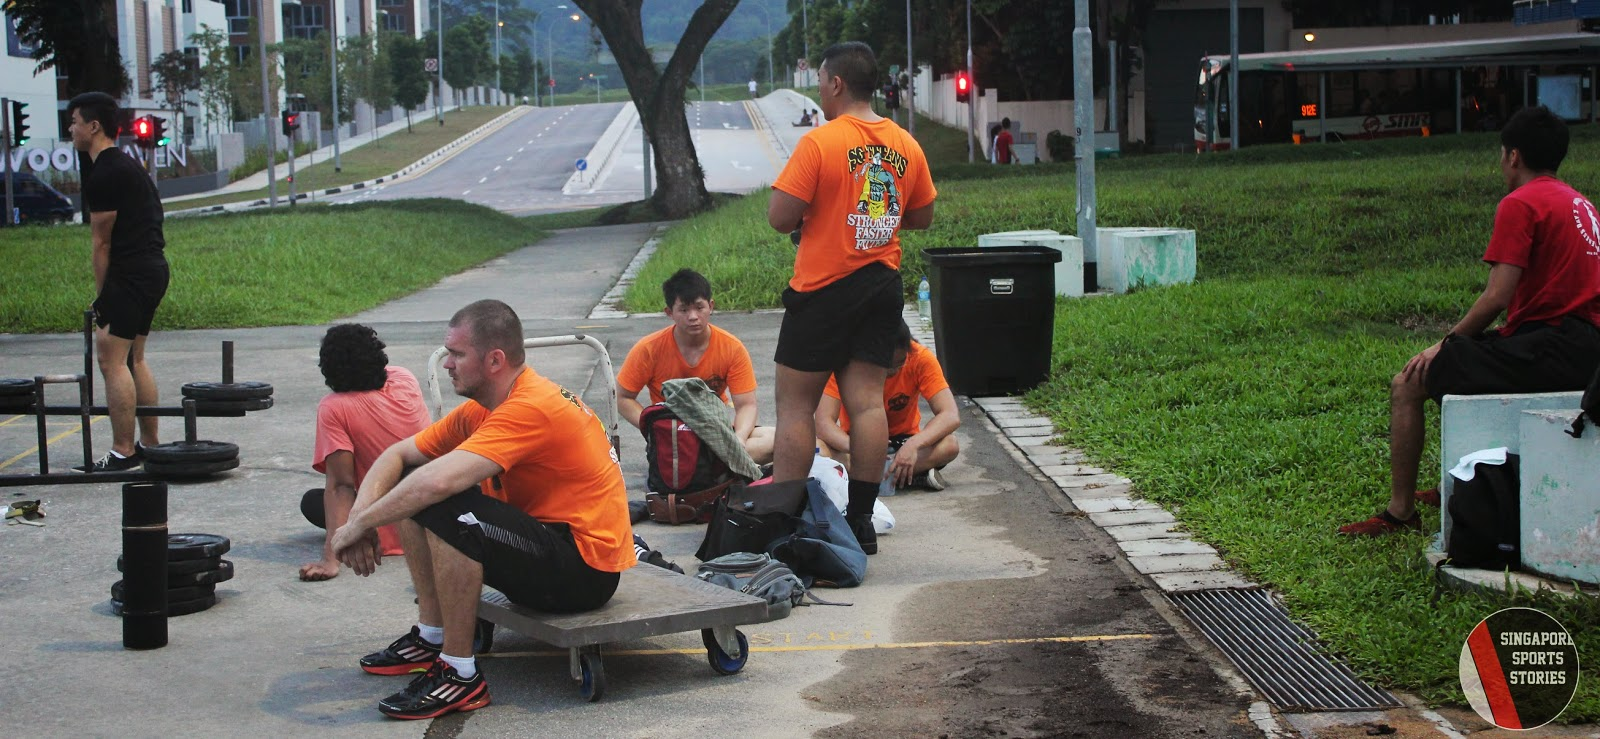 Members of Singapore Strongman group, SG Titans, taking a break